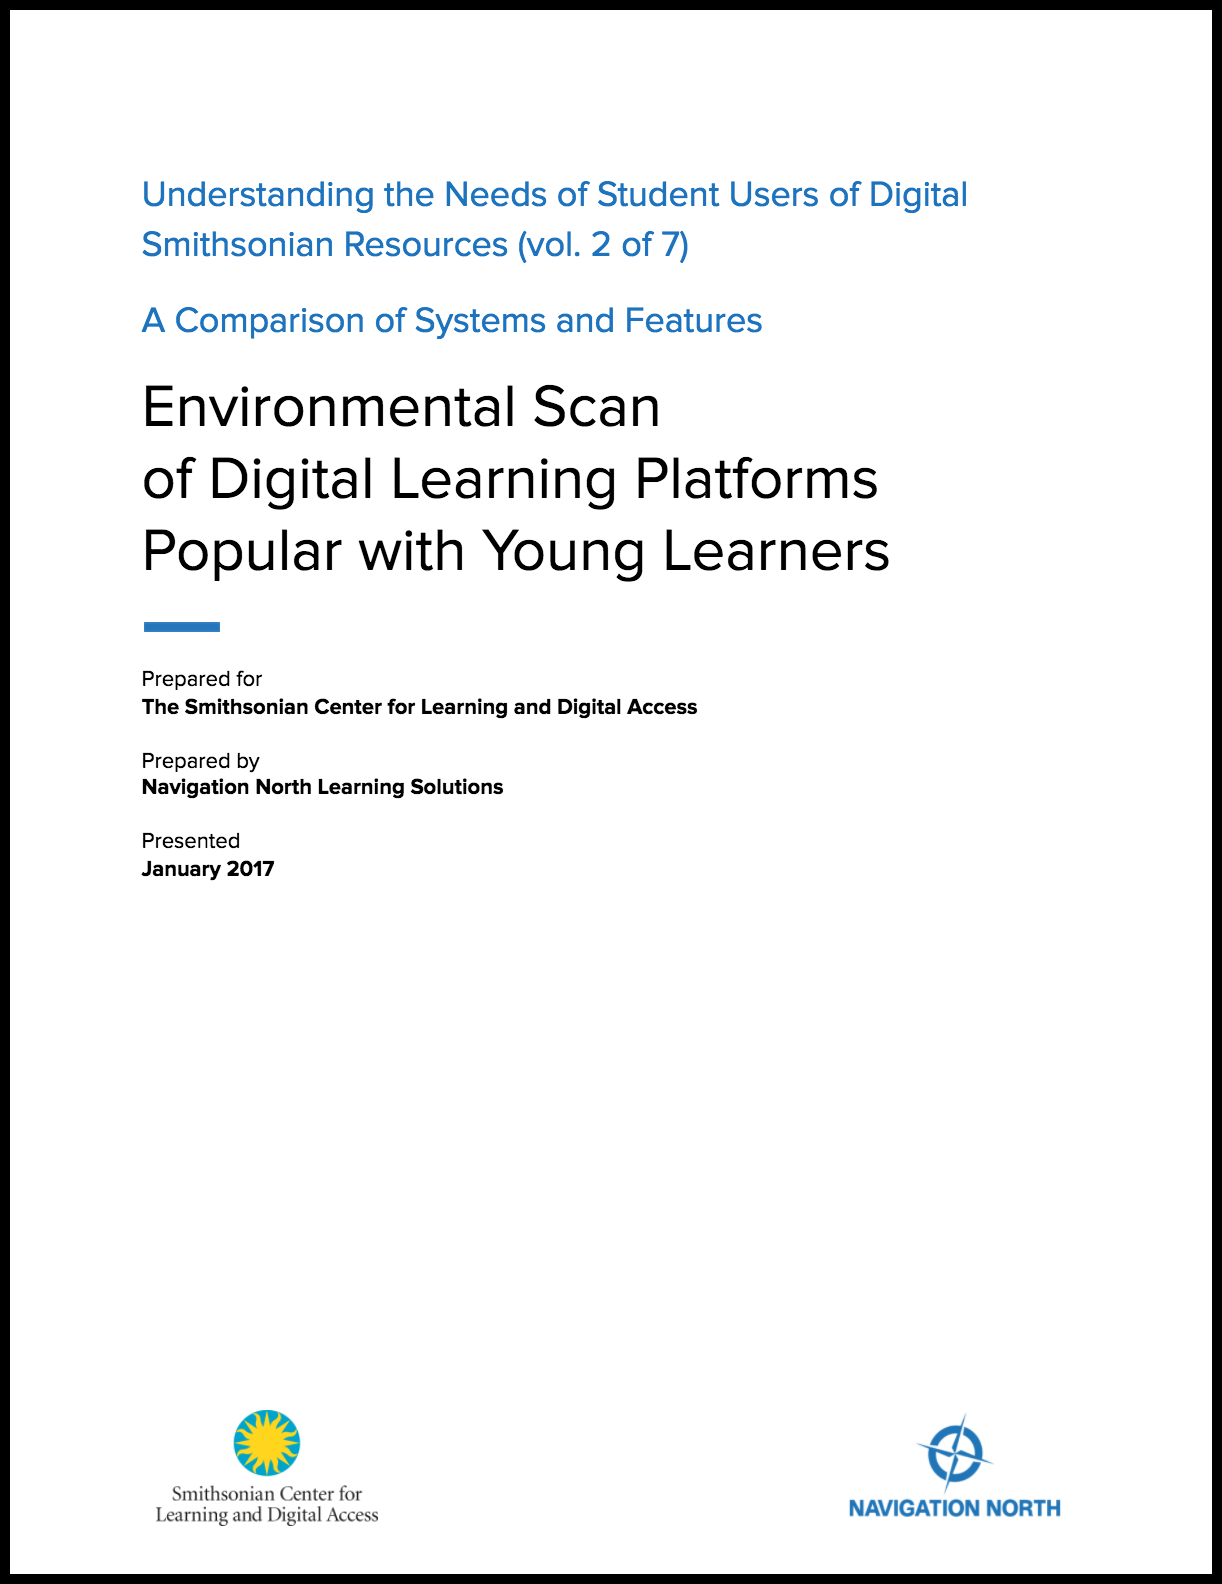 Environmental Scan of Digital Learning Platforms Popular with Young Learners